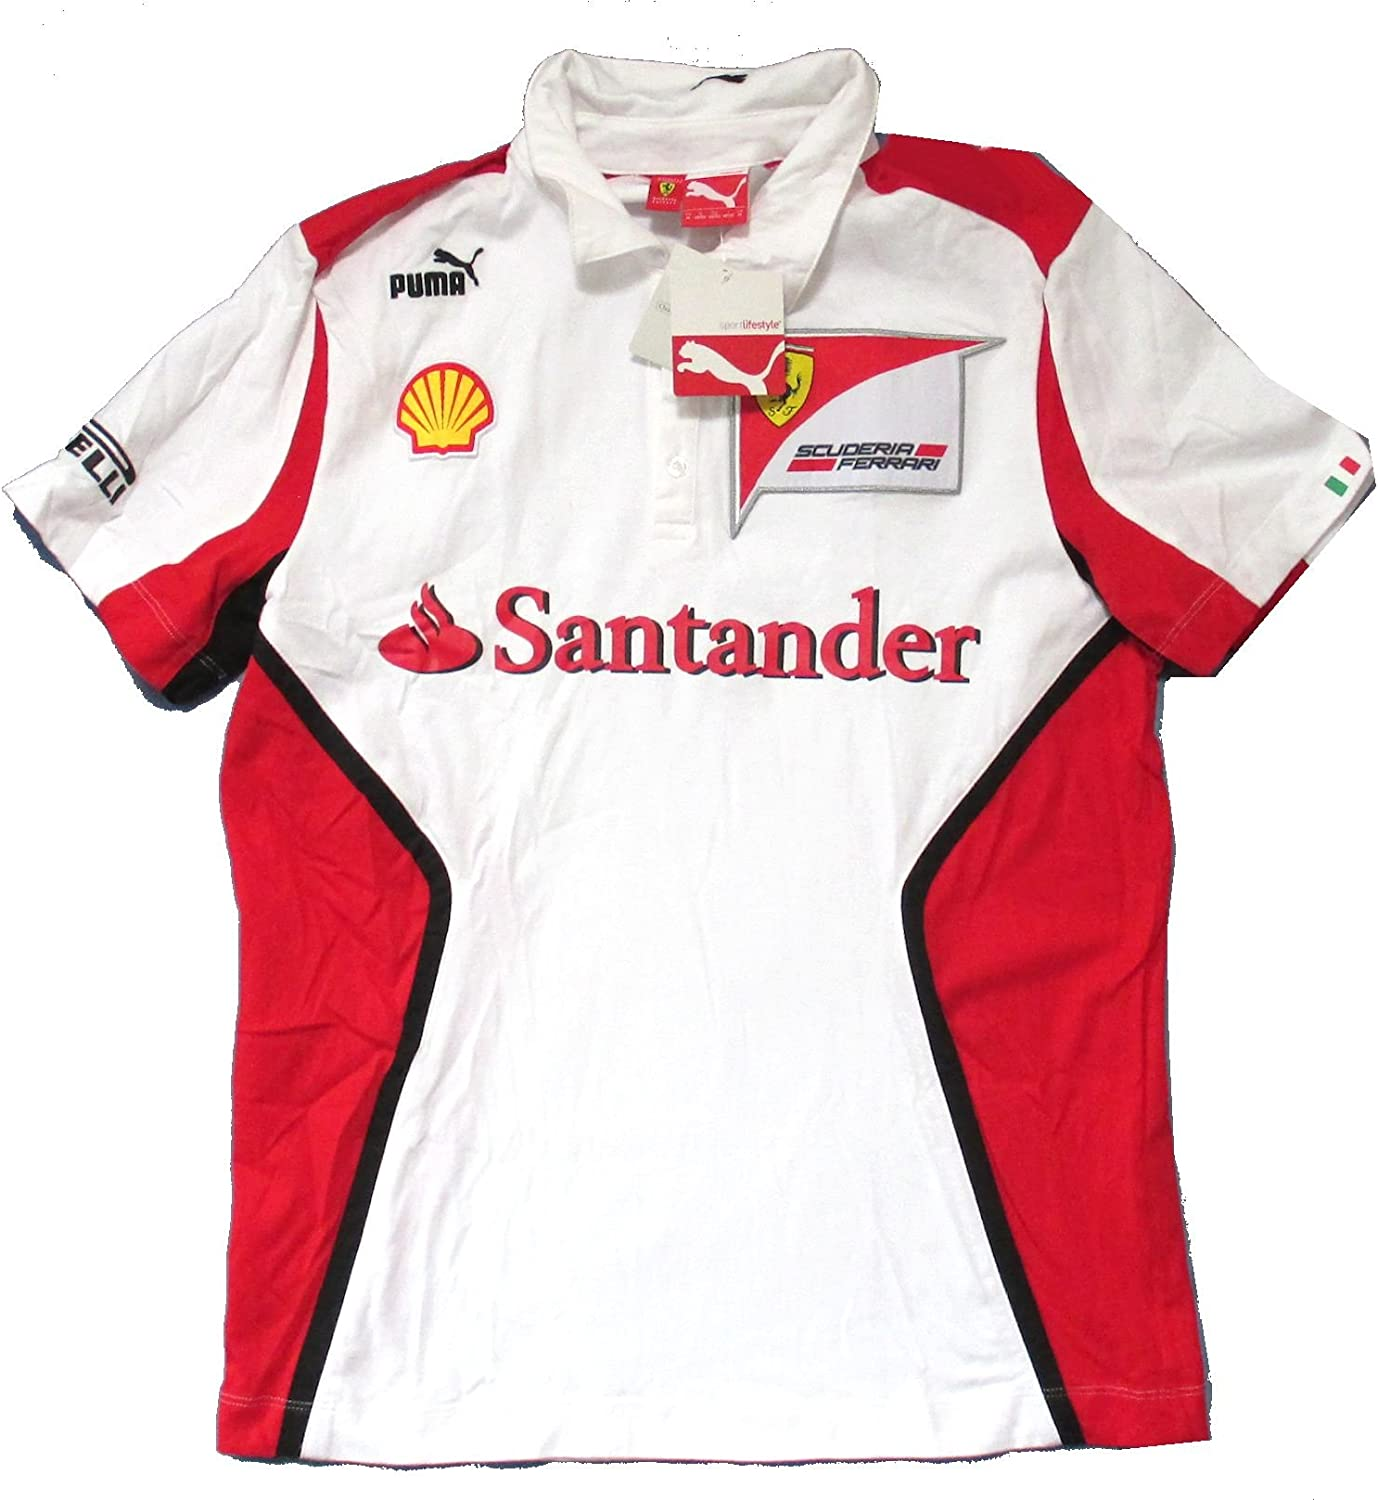 Ferrari Scuderia Puma SF Equipo Color Blanco Polo Camiseta Adulto ...